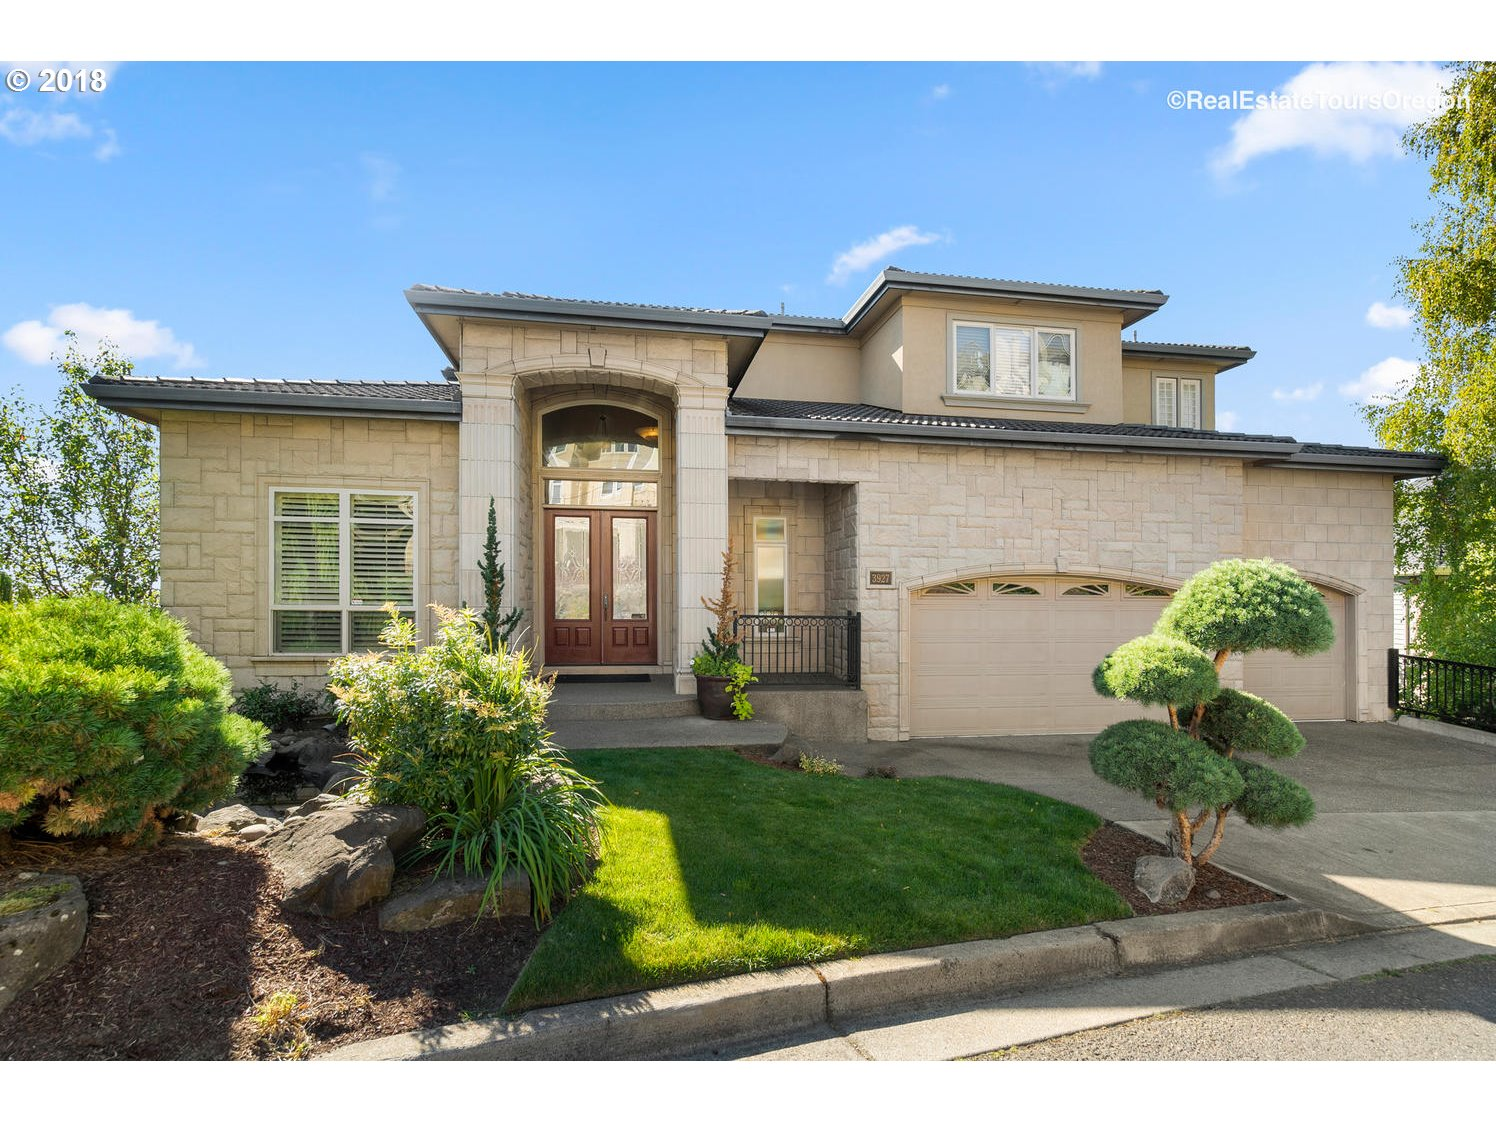 5963 sq. ft 5 bedrooms 4 bathrooms  House , Portland, OR